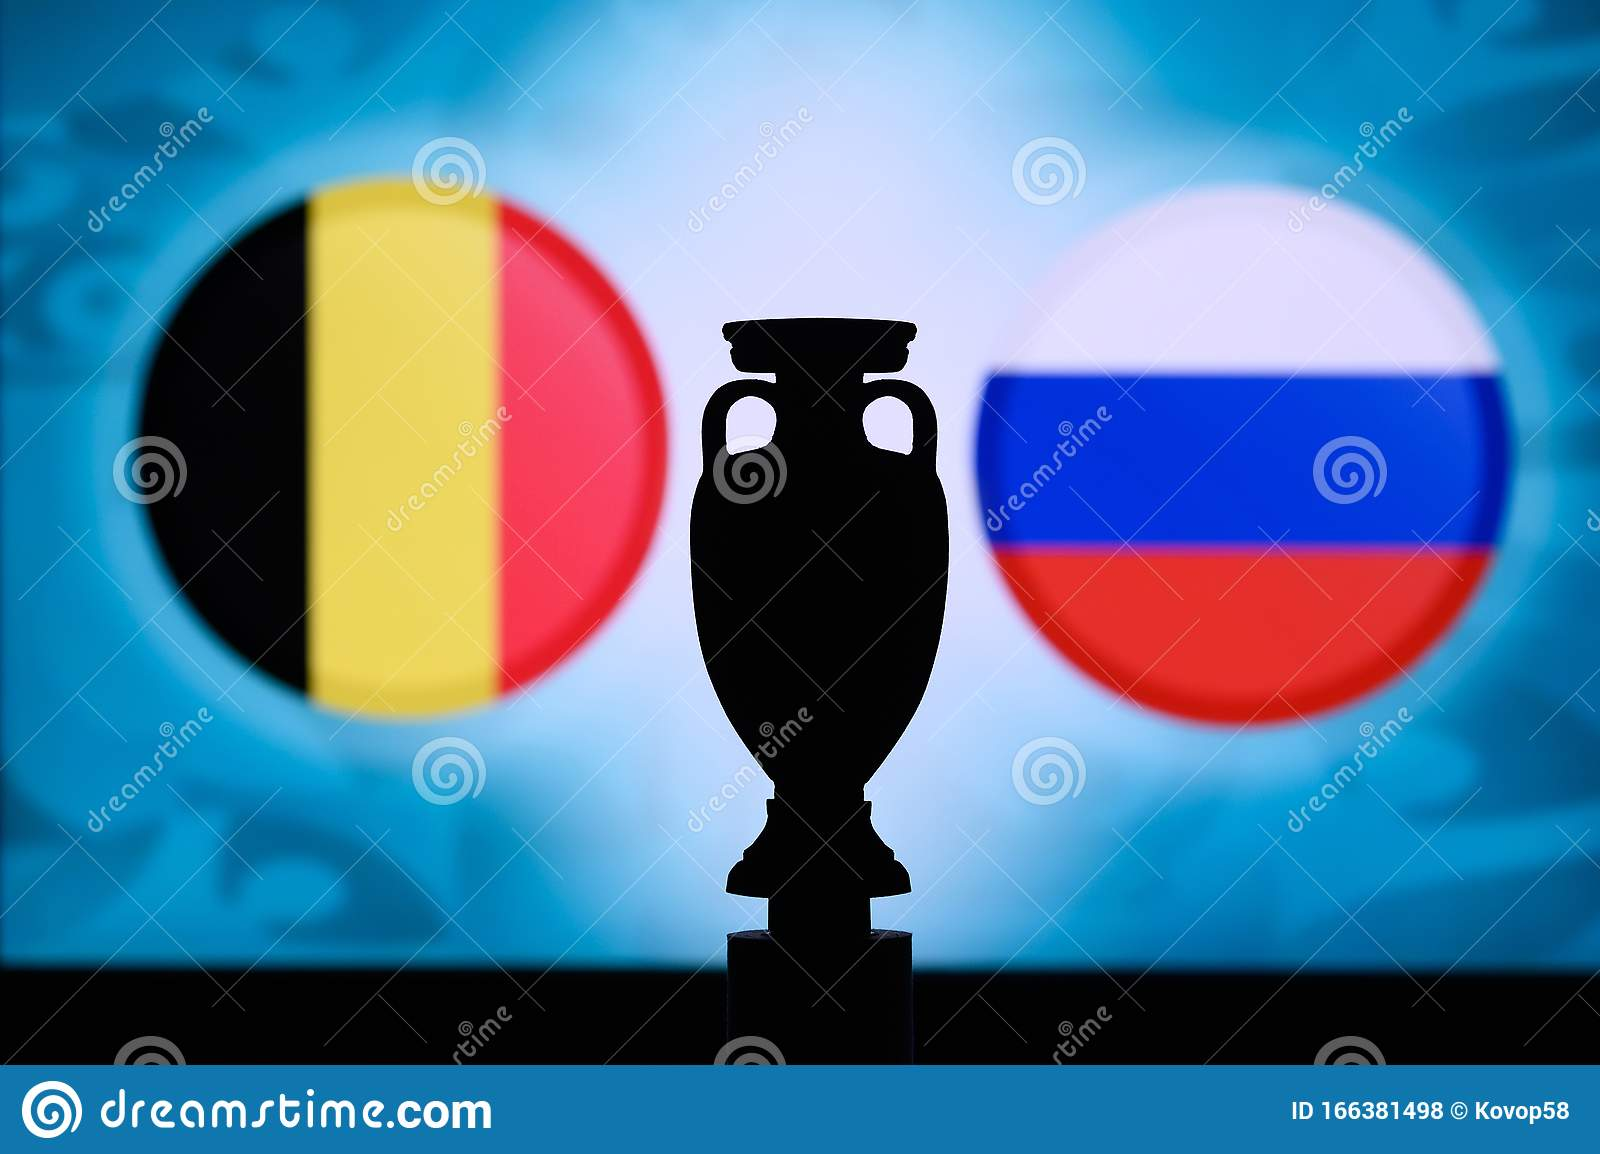 Stream live games and replays (u.s. Belgium Vs Russia, Euro National Flags And Football Trophy ...